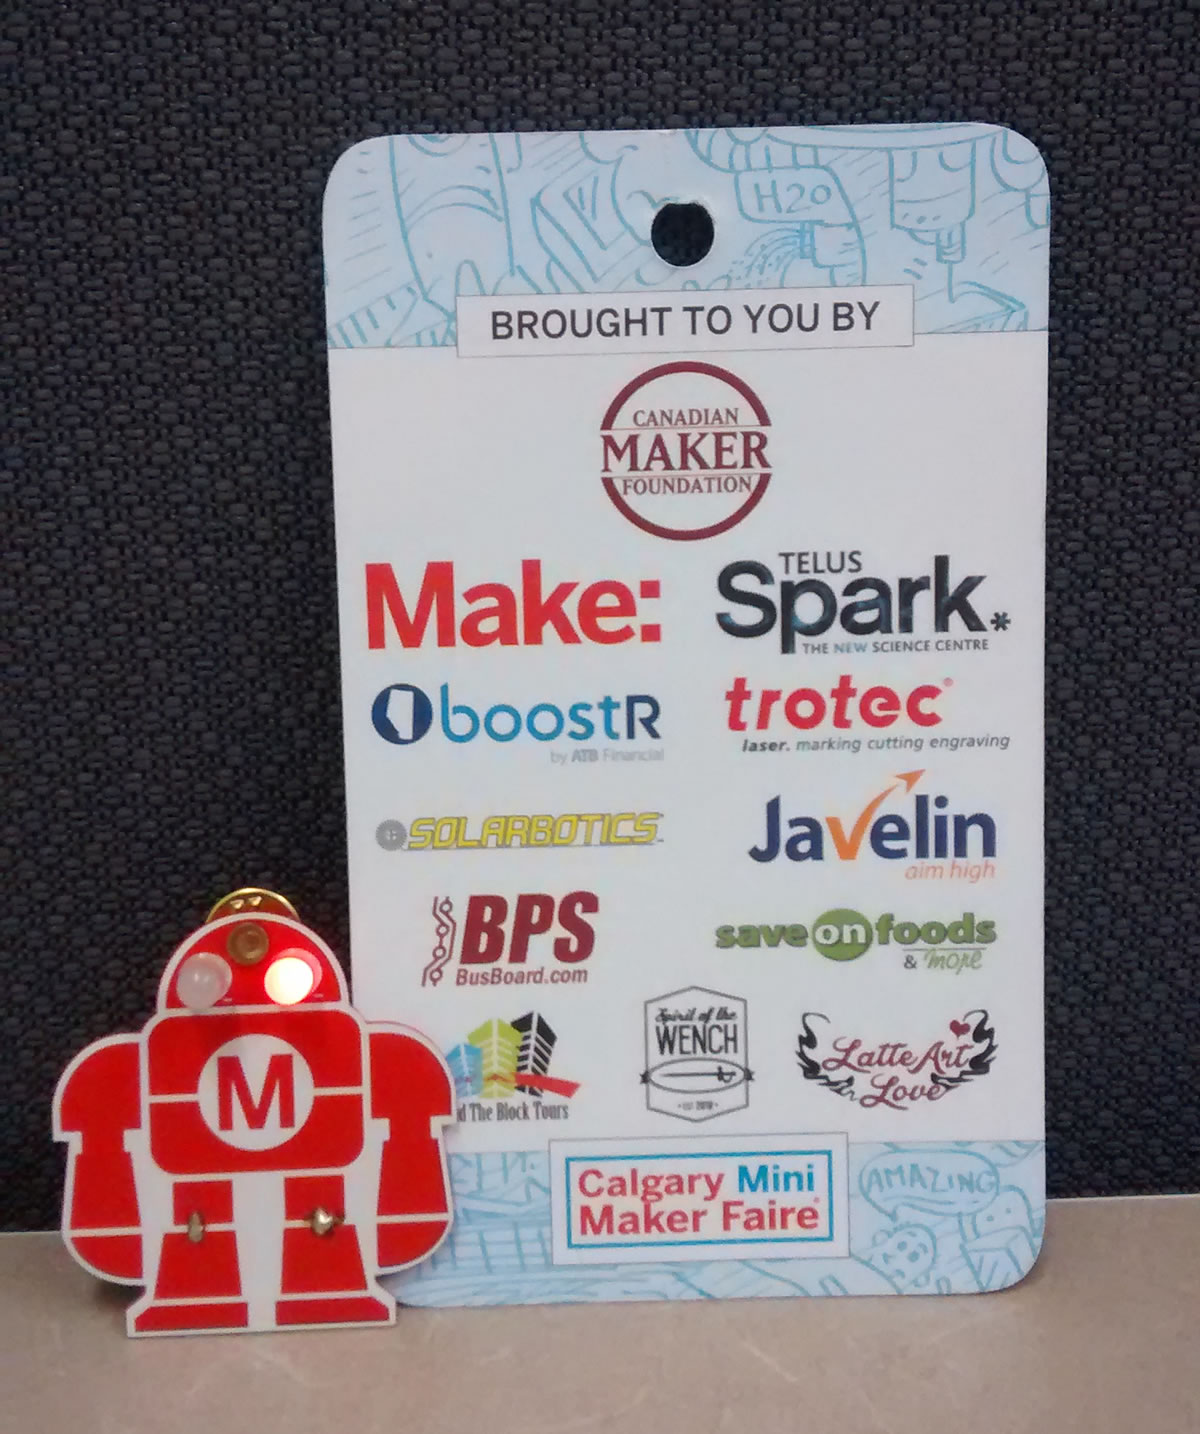 Event Sponsors and Robot learn to Solder Kit